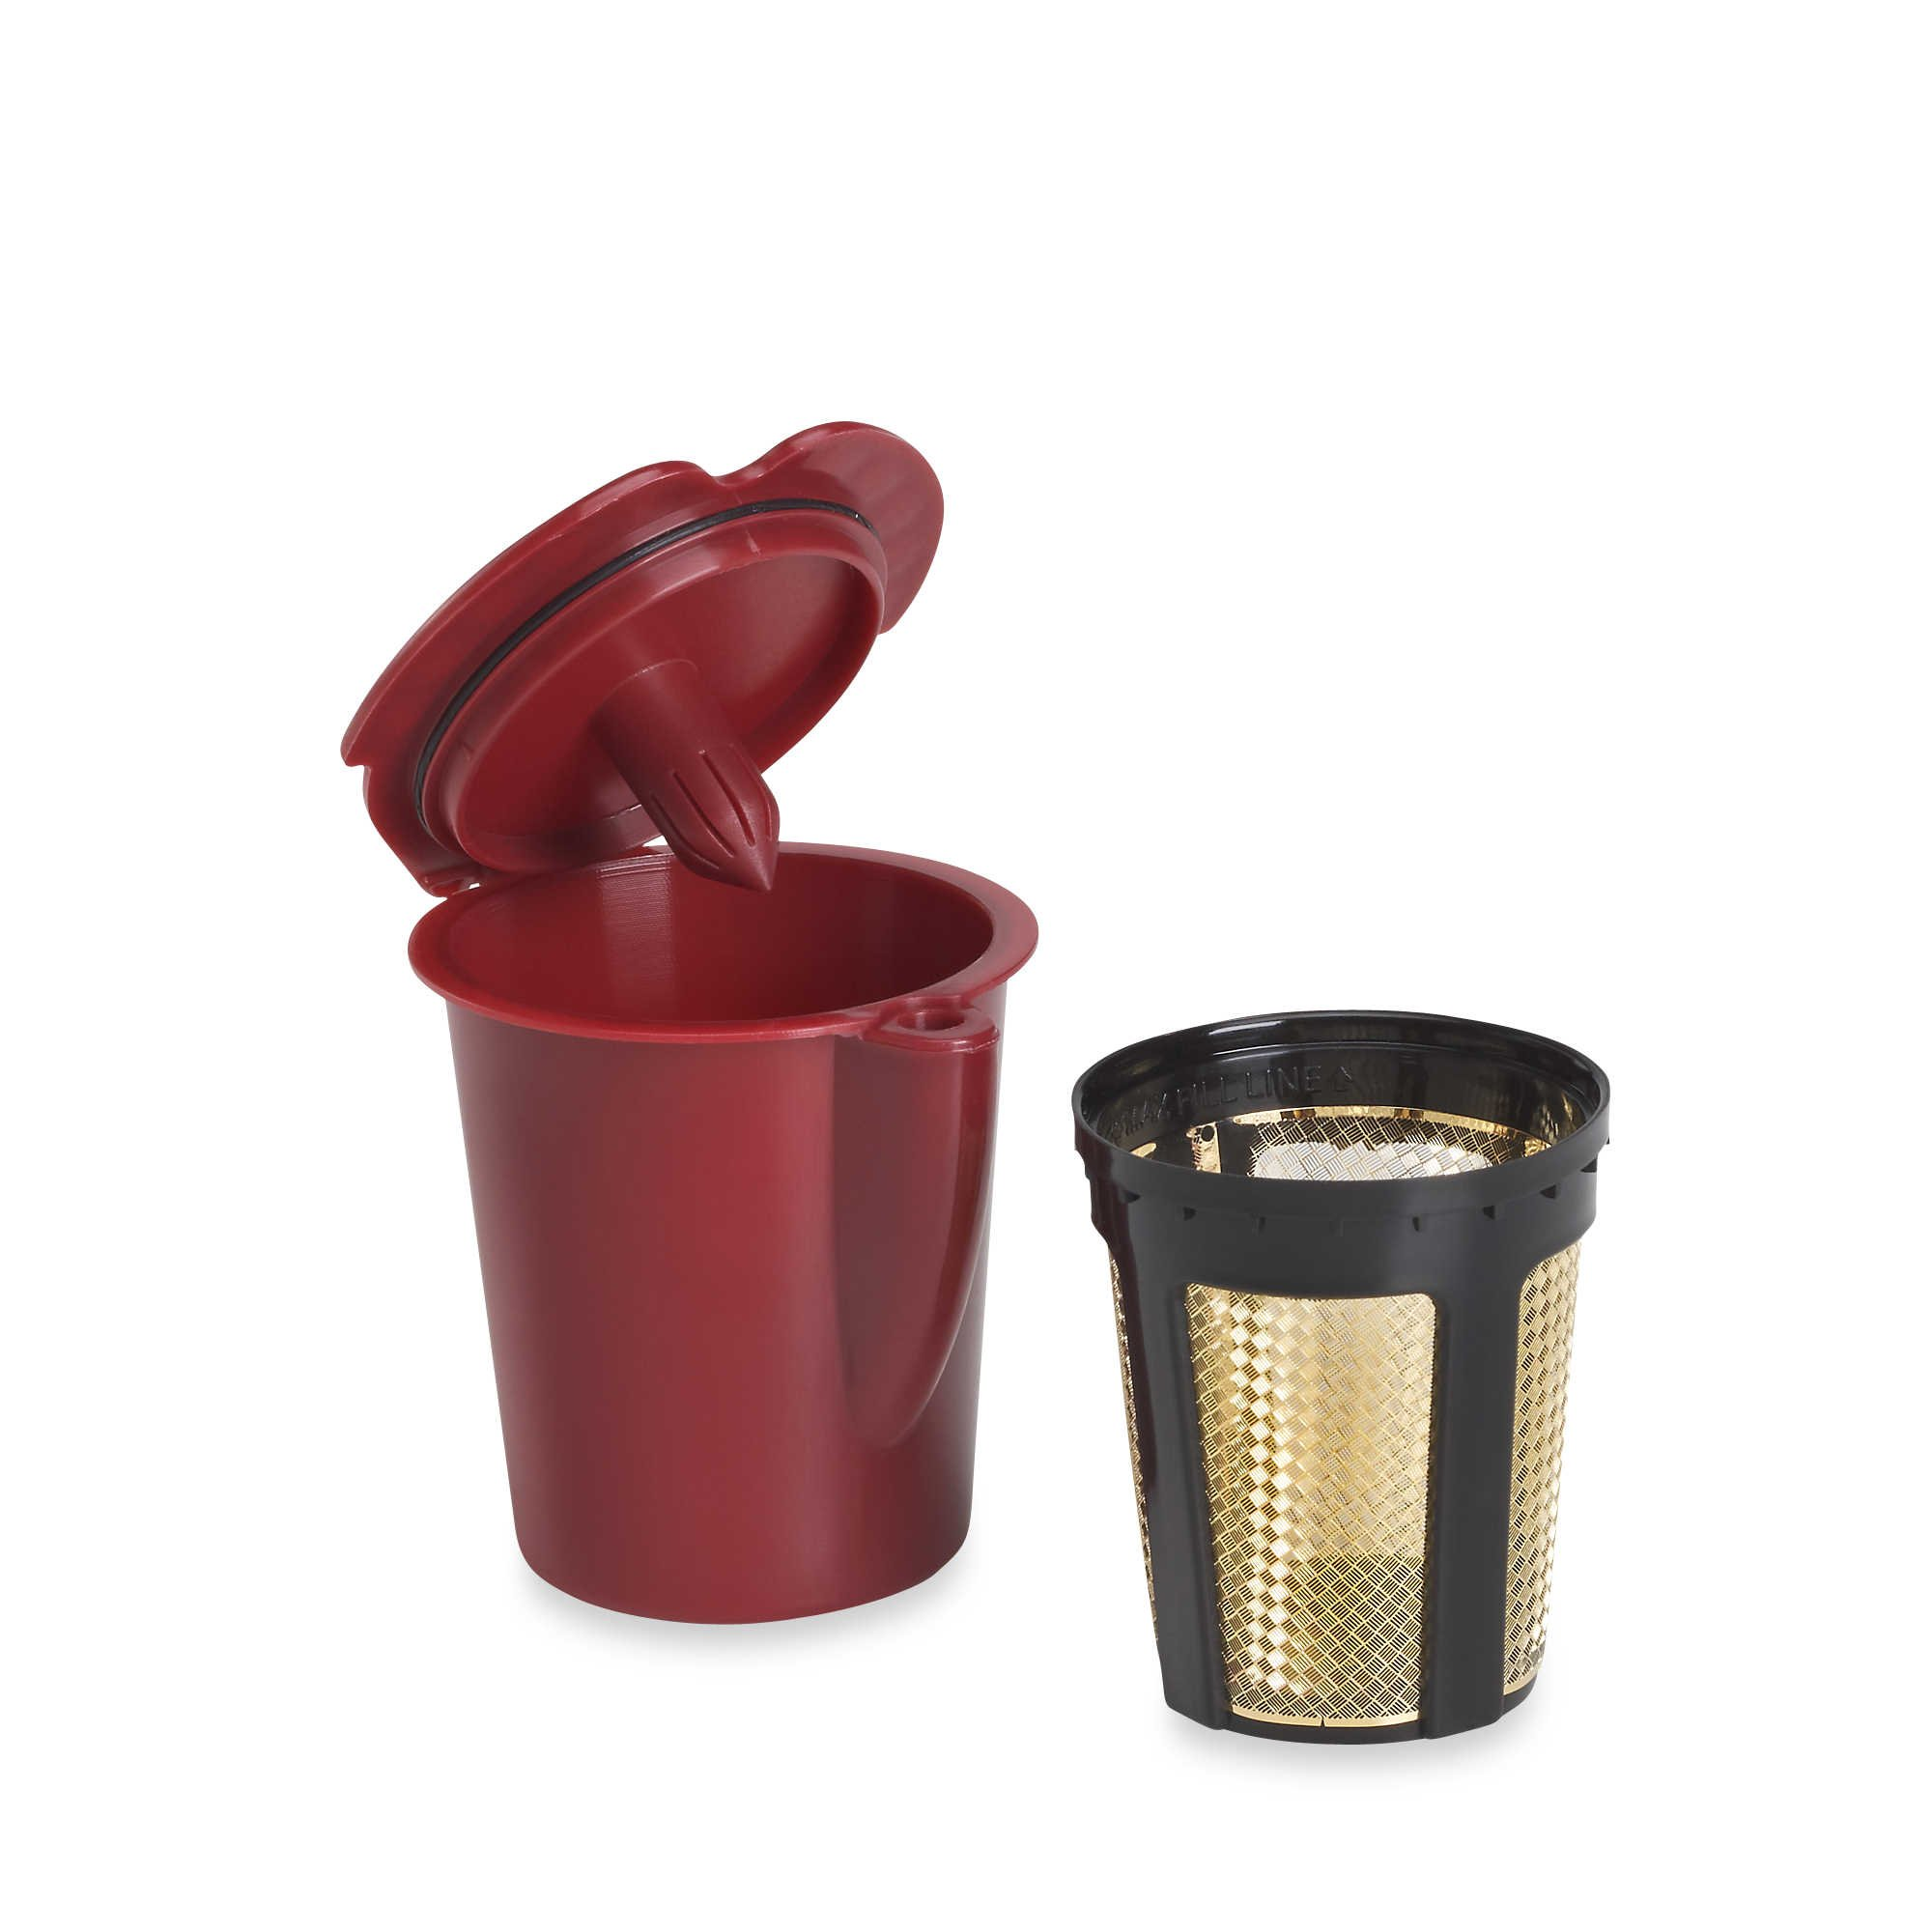 Vue Bathroom Accessories: Amazon.com : Solofill V1 GOLD CUP 24K Plated Refillable